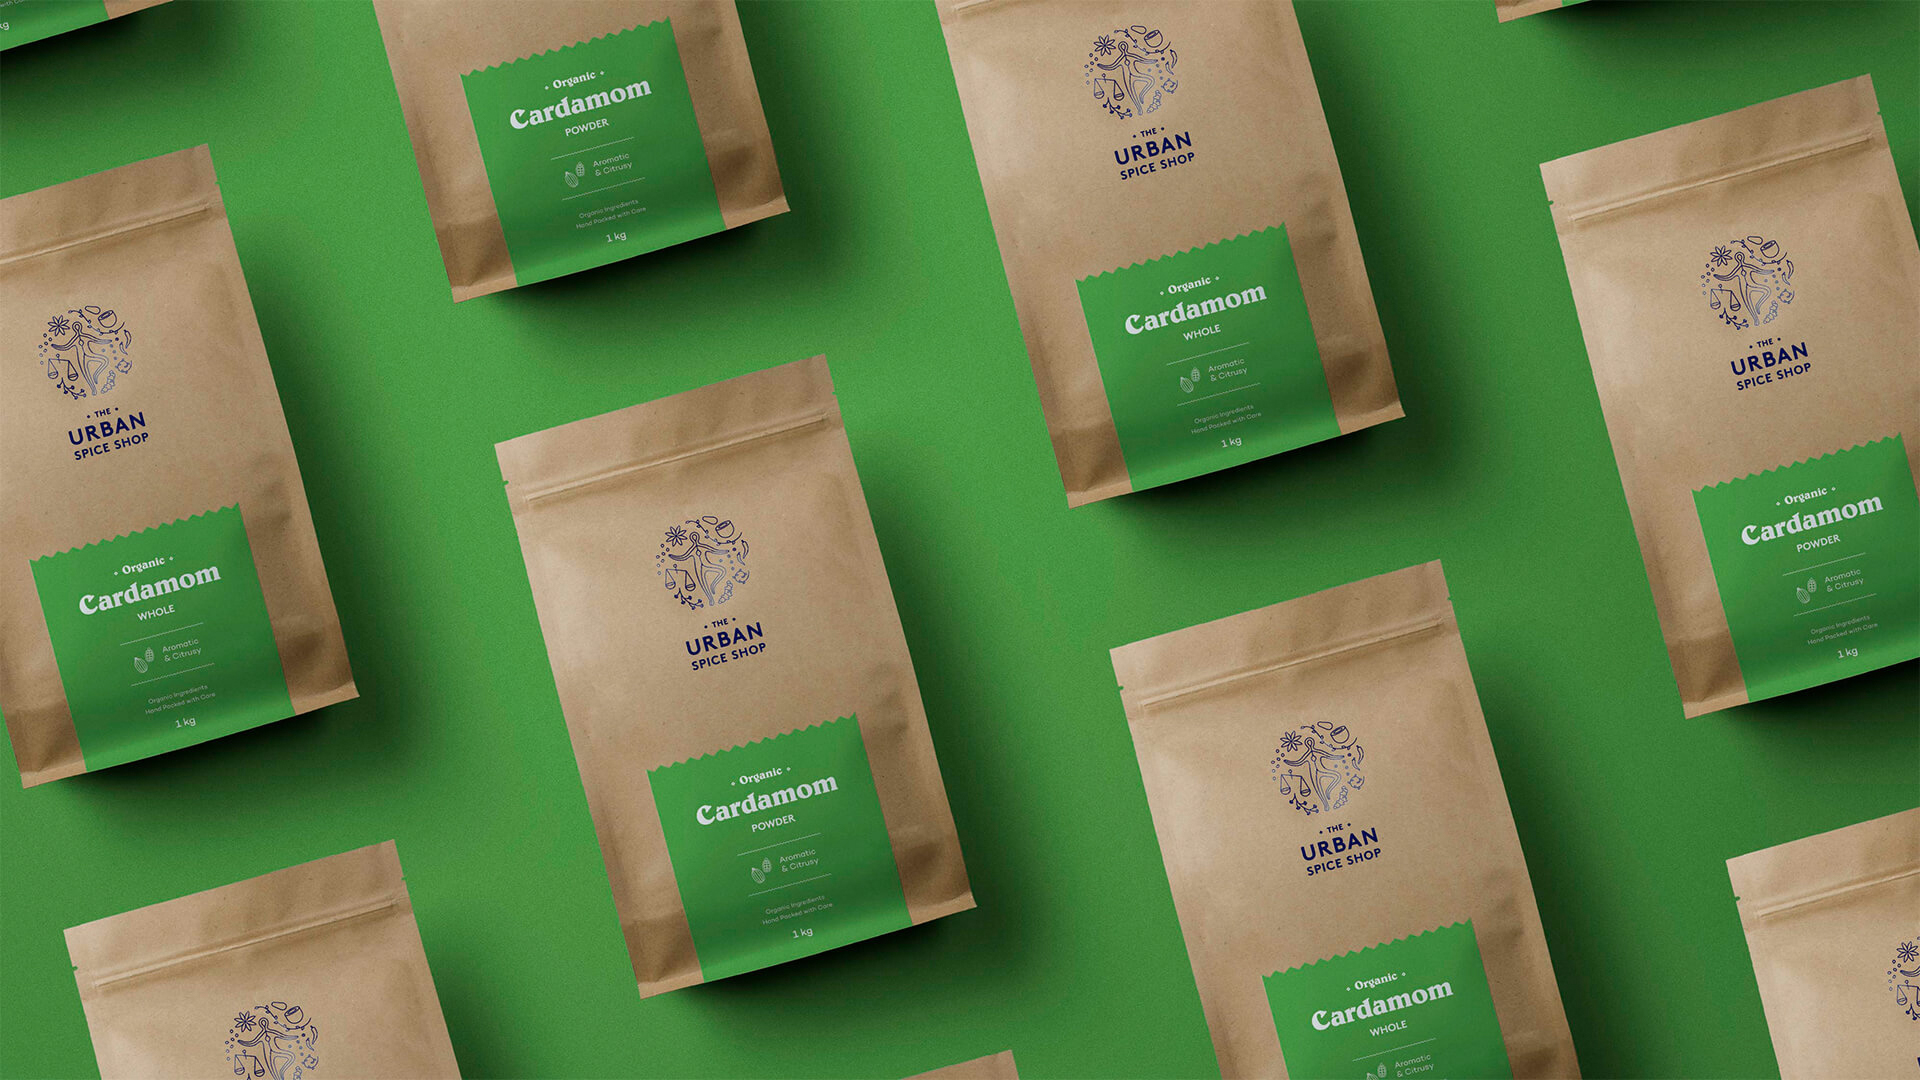 Brand Identity and Packaging Design for The Urban Spice Shop / World Brand & Packaging design Society